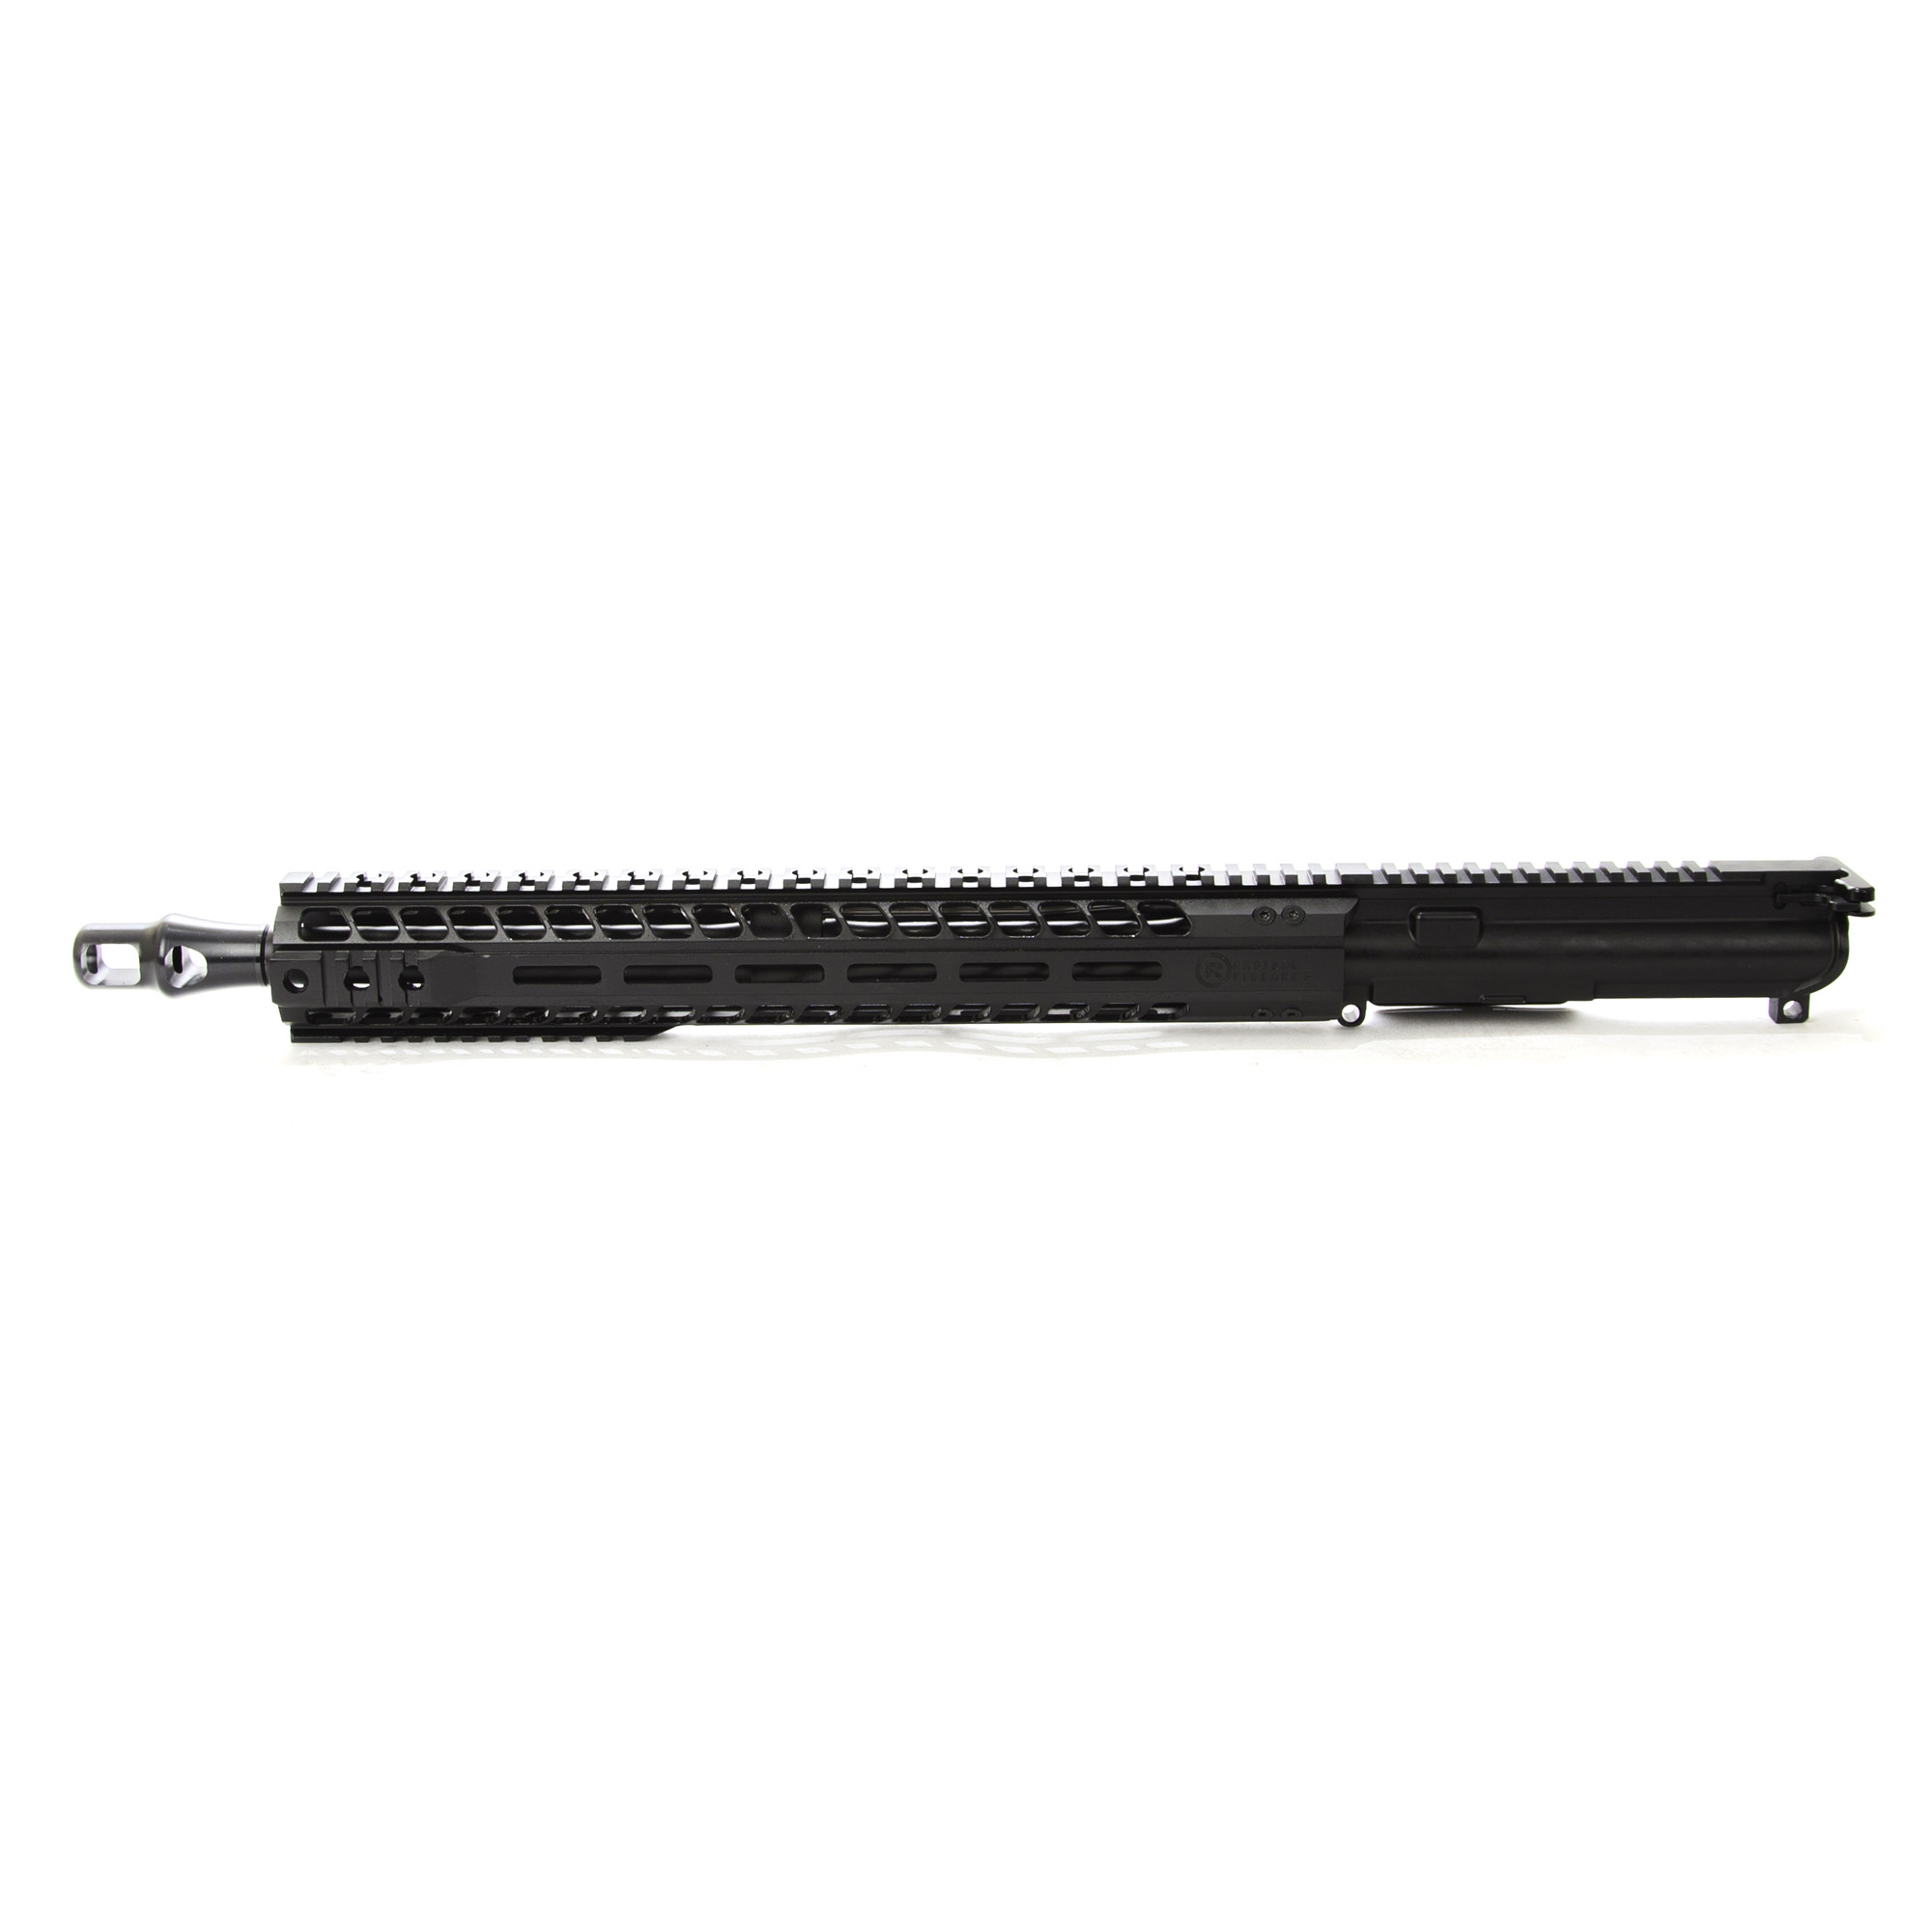 """The Radical Firearms 16"""" Big Bore profile 458 Socom is a complete MIL-STD upper ready to drop on any MIL-STD lower Receiver. Perfect for the novice or advanced shooter wanting to finish out that build and hit the range. Built with a 15"""" MHR free float rail system for increased accuracy and keeping your hands cool. No matter what your style of shooting is"""" Radical Firearms has you covered."""